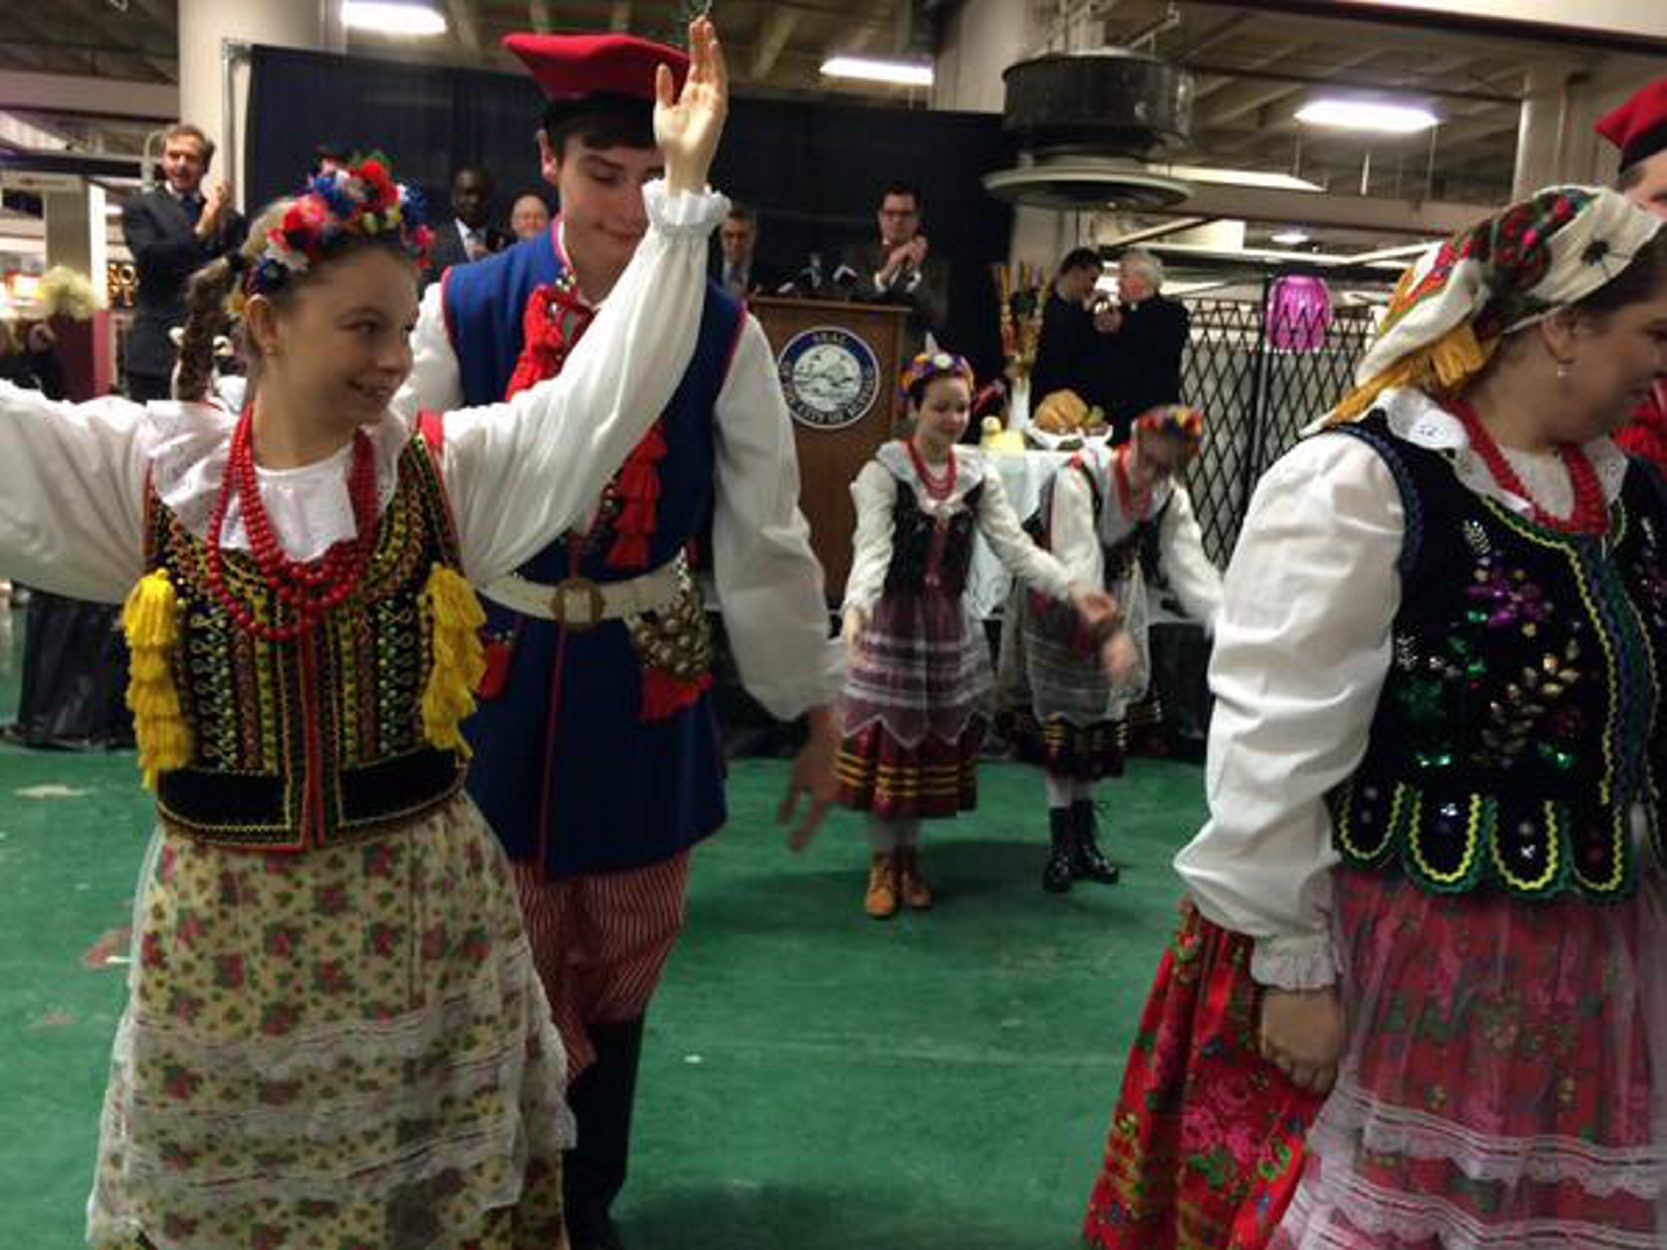 Polish dancers were on hand for the ceremonial opening of the Easter season at the Broadway Market on March 20. (Susan Schulman)